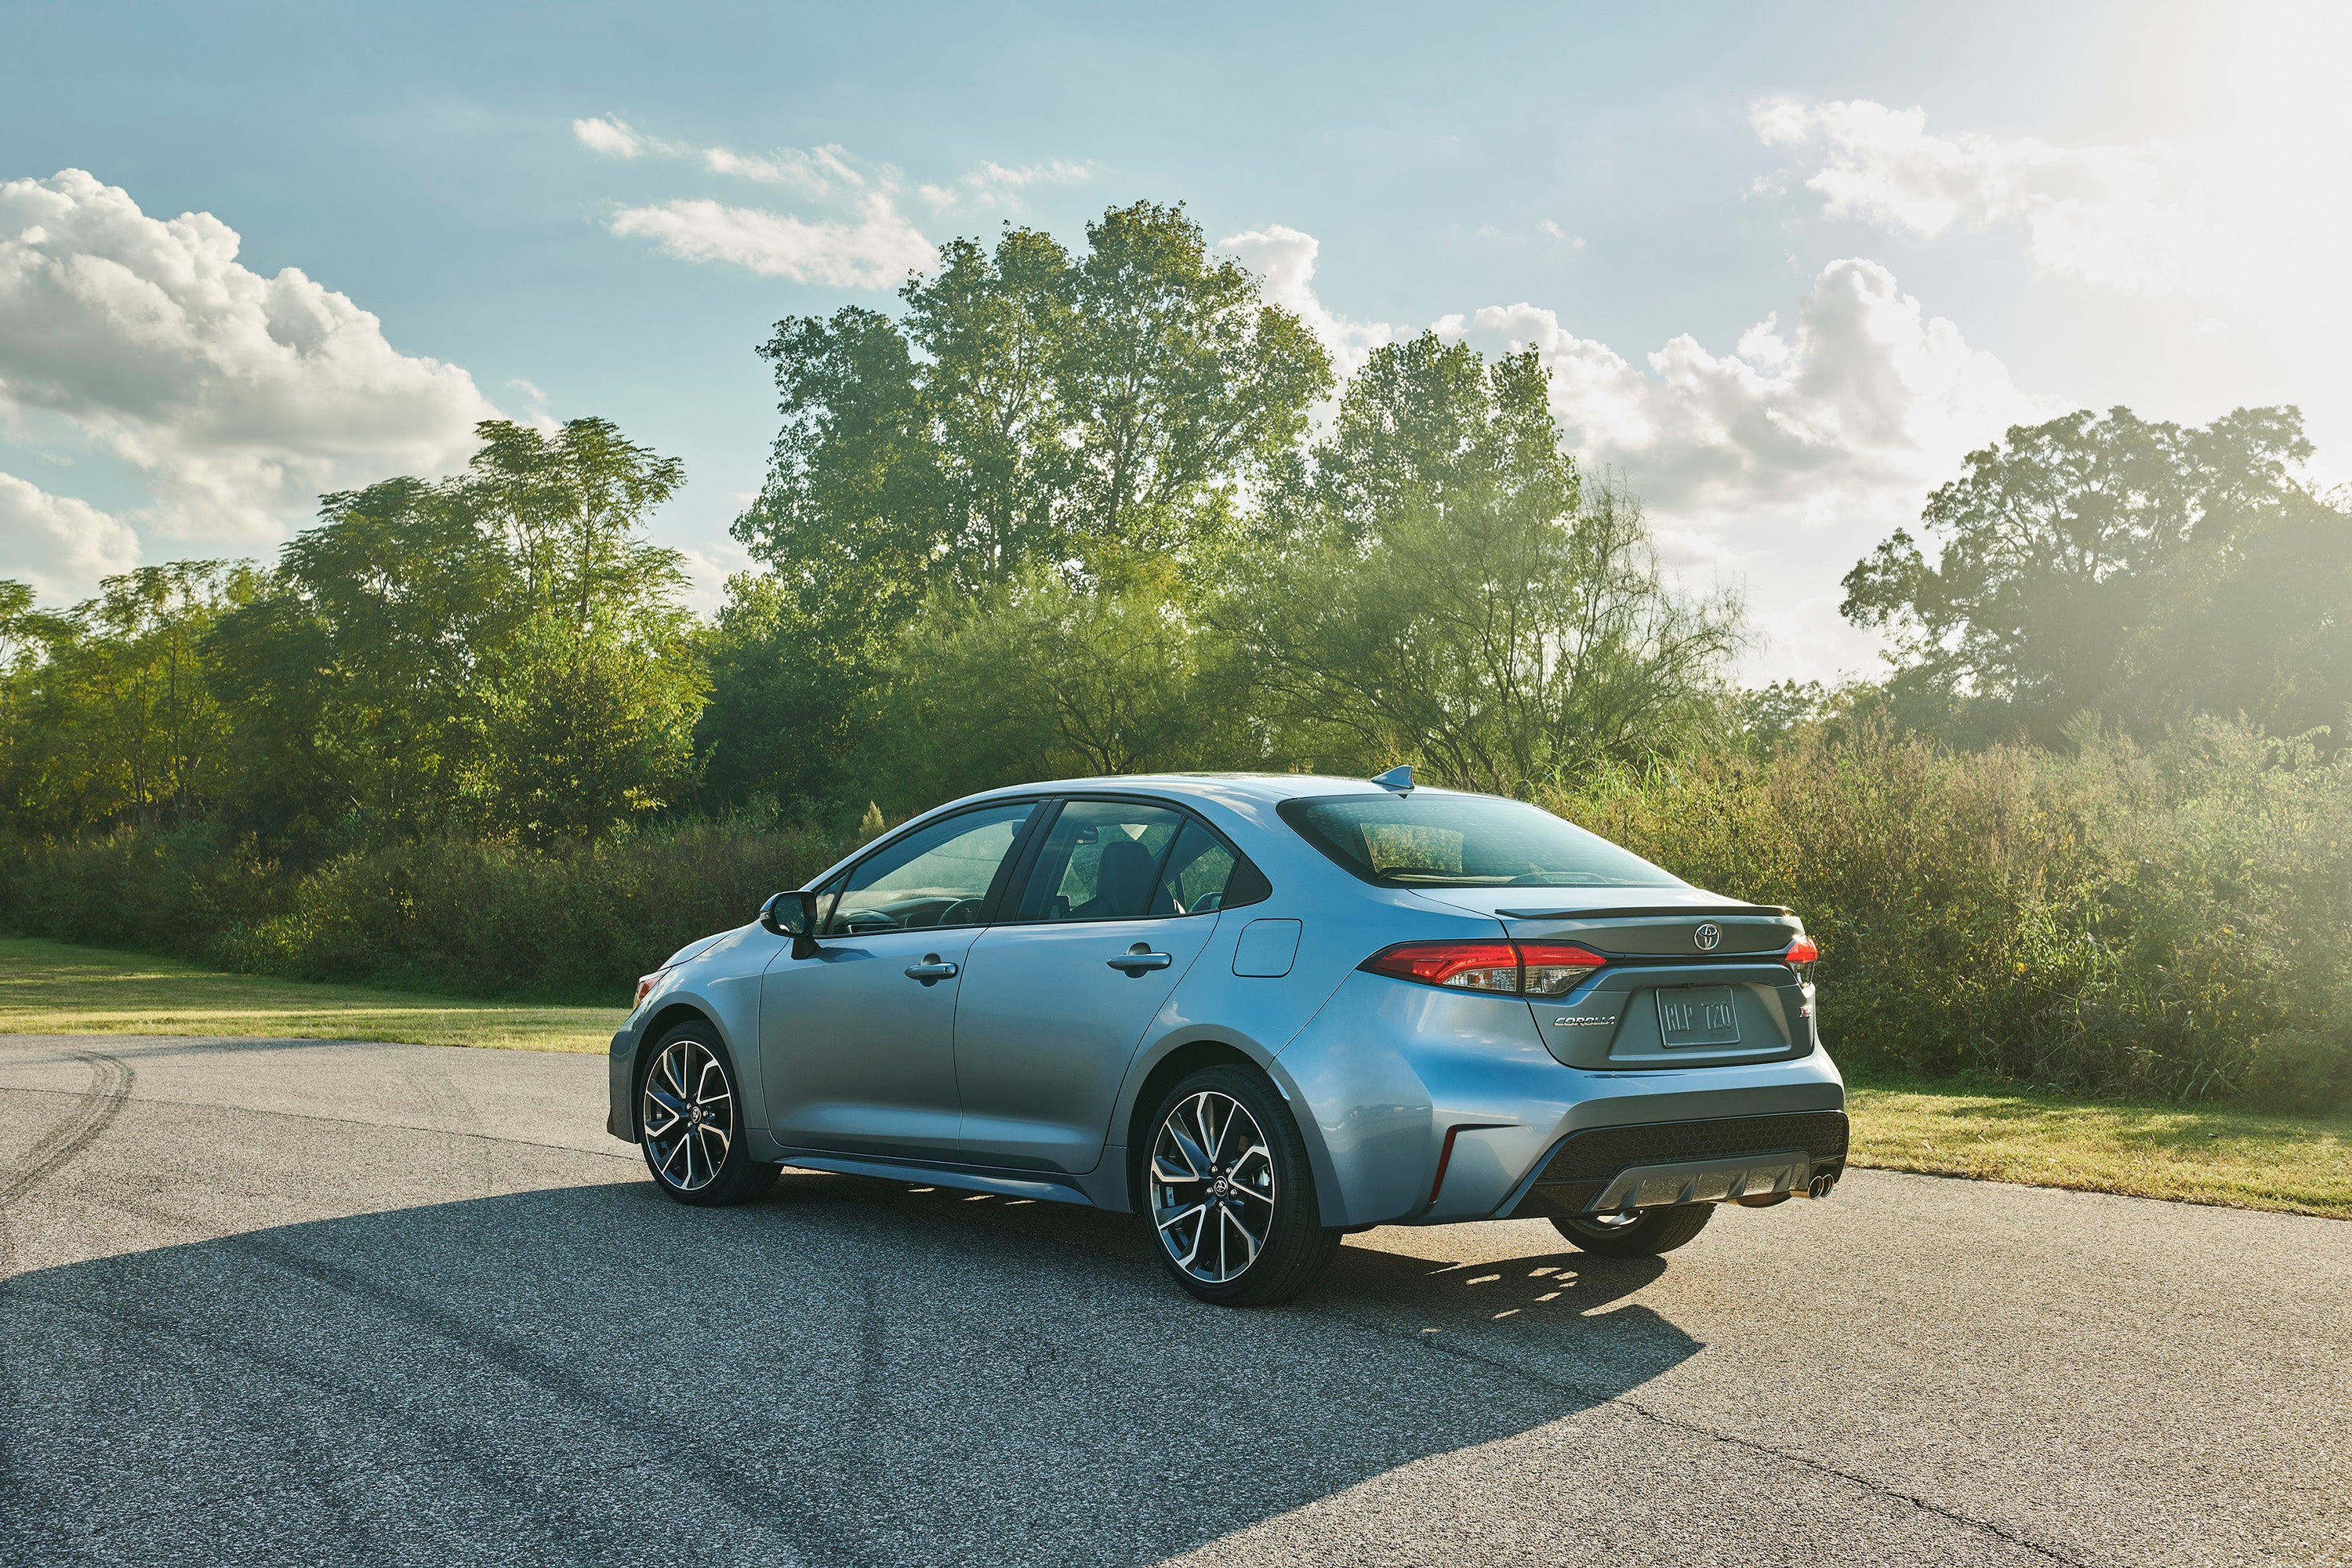 Toyota adds a new wrinkle to the 2020 Corolla: Stylish